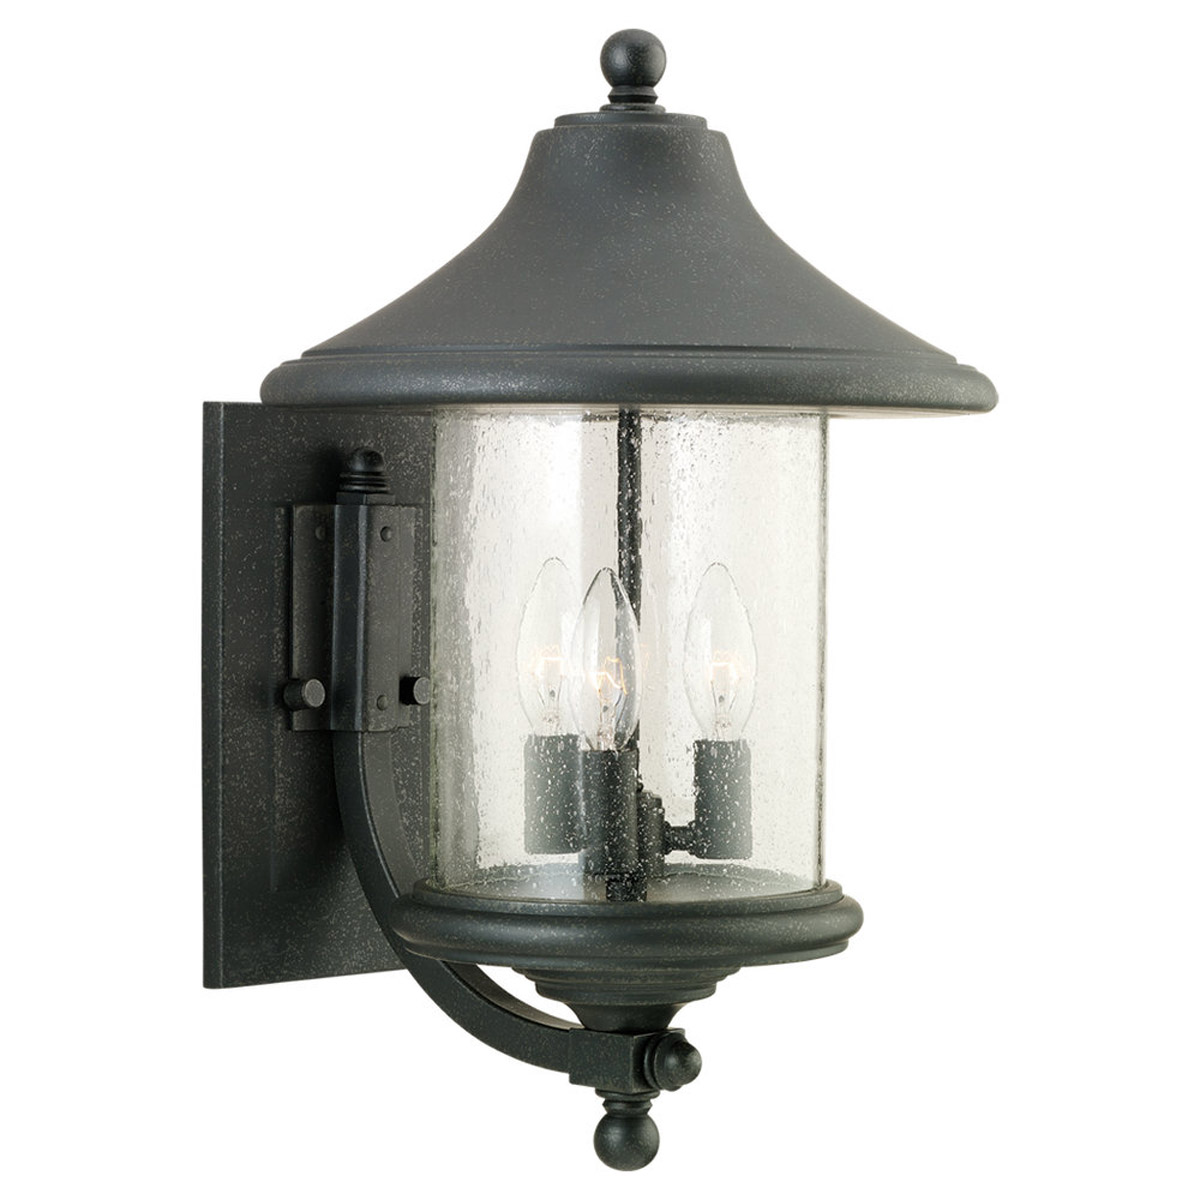 Sea Gull Lighting Berkley Hill 3 Light Outdoor Wall Lantern in Forged Iron 88307-185 photo